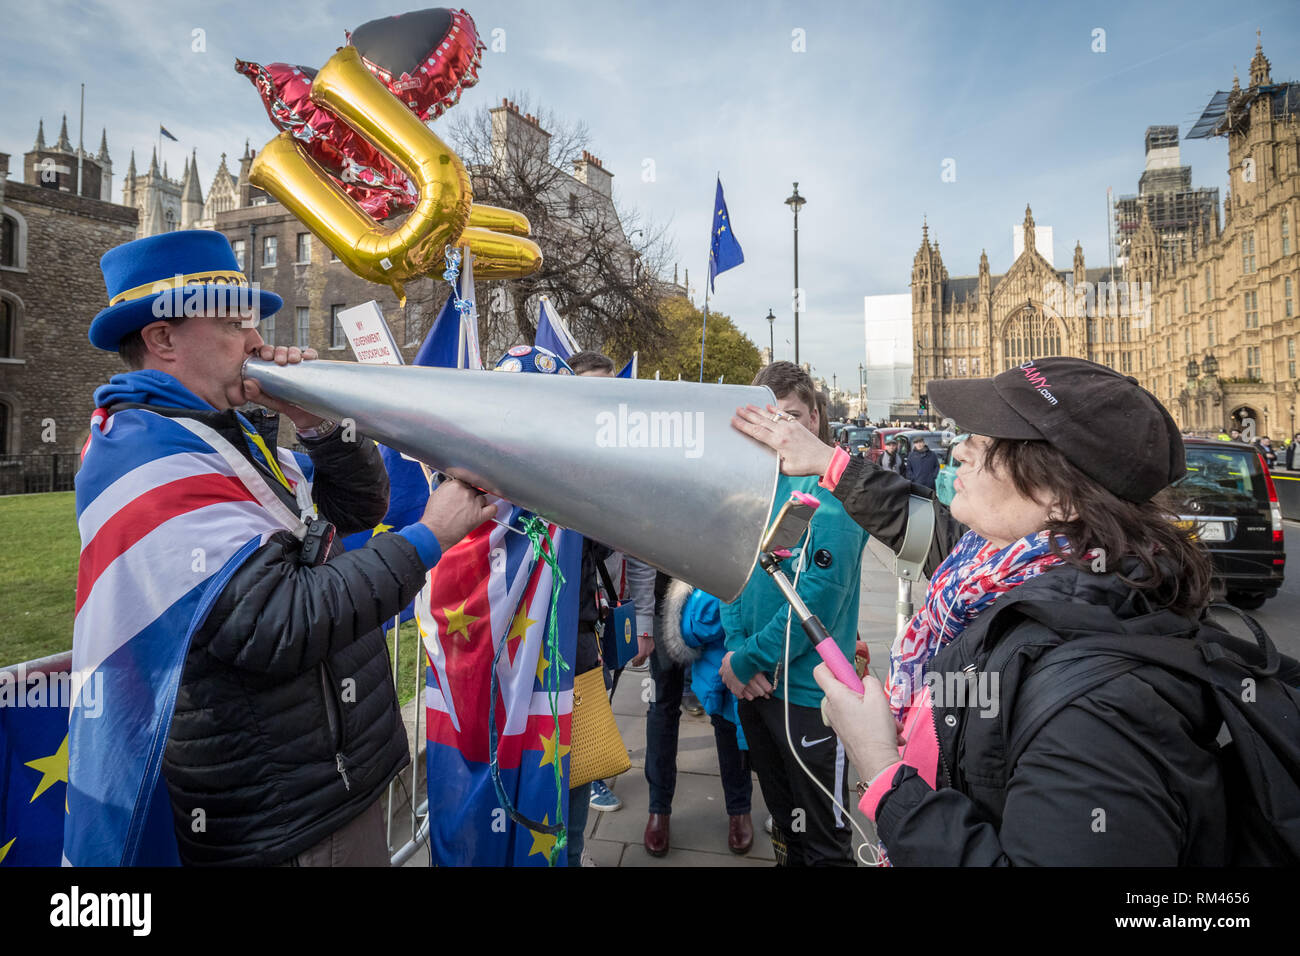 London, UK. 13th Feb 2019. Stop Brexit: Pro-EU supporter, Steve Bray, (L) is challenged by a right-wing Brexiteer (R) during on-going protests in Westminster. Credit: Guy Corbishley/Alamy Live News - Stock Image